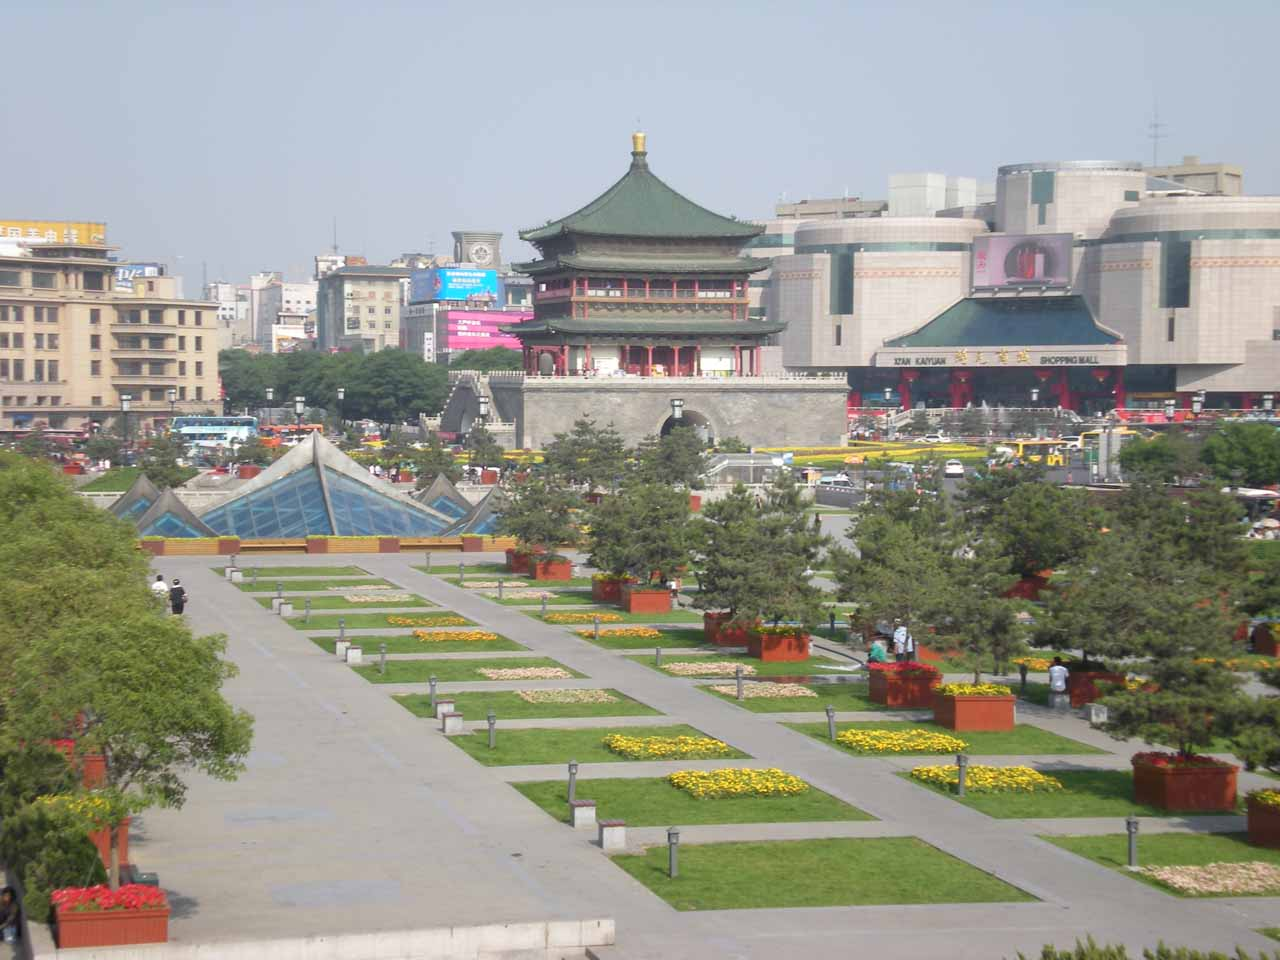 Looking down one of the streets towards another tower and some gardens lined before it in Xi'an